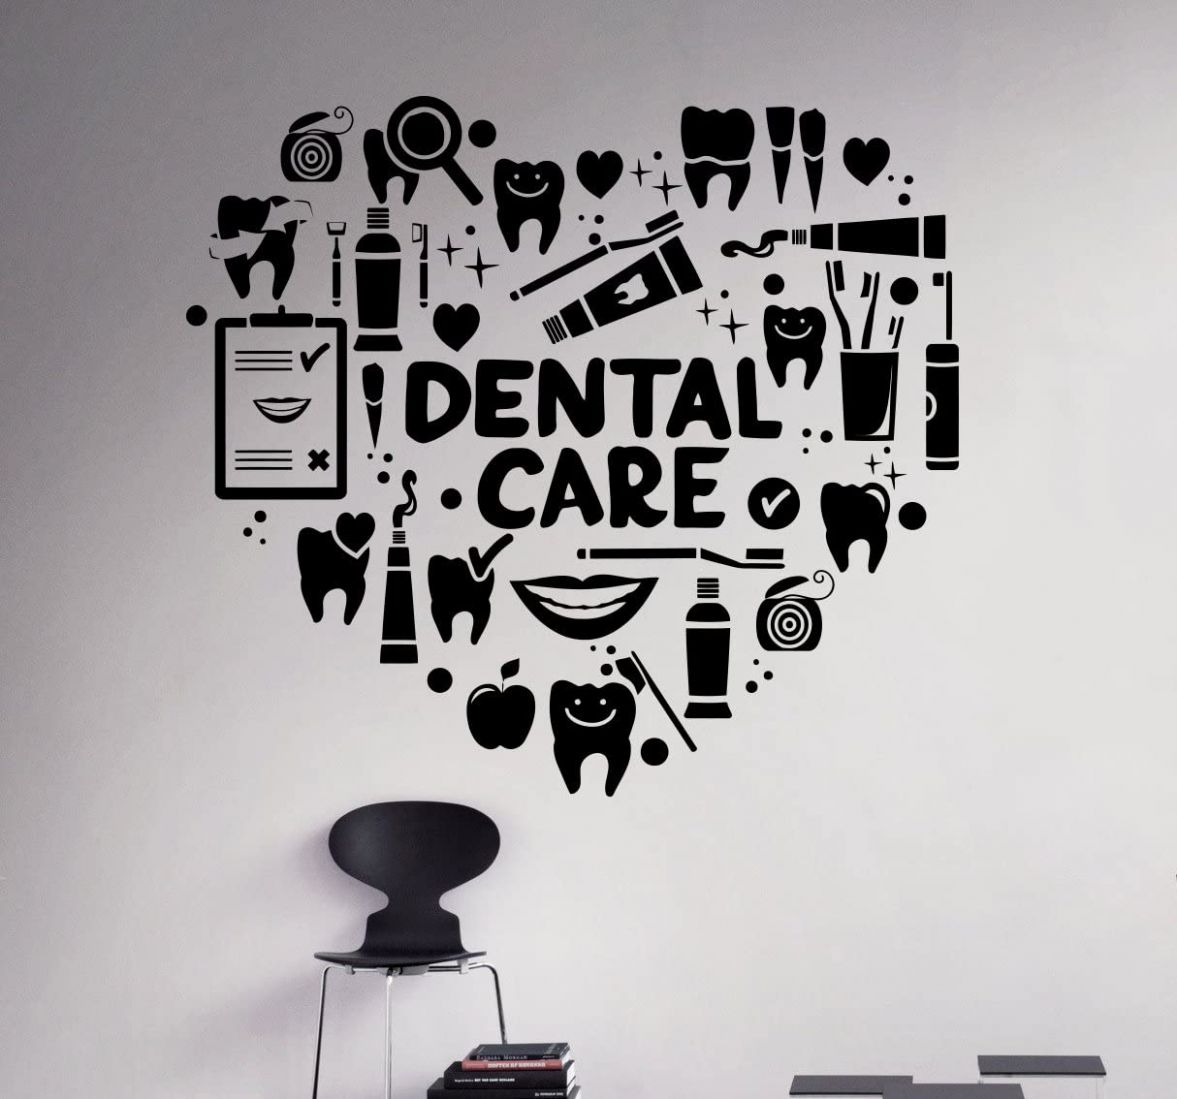 Dental Care Wall Decal Dentist Medical Vinyl Sticker Home Decor Ideas  Bathroom Interior Removable Wall Art 9(dtl) - wall decor vinyl ideas